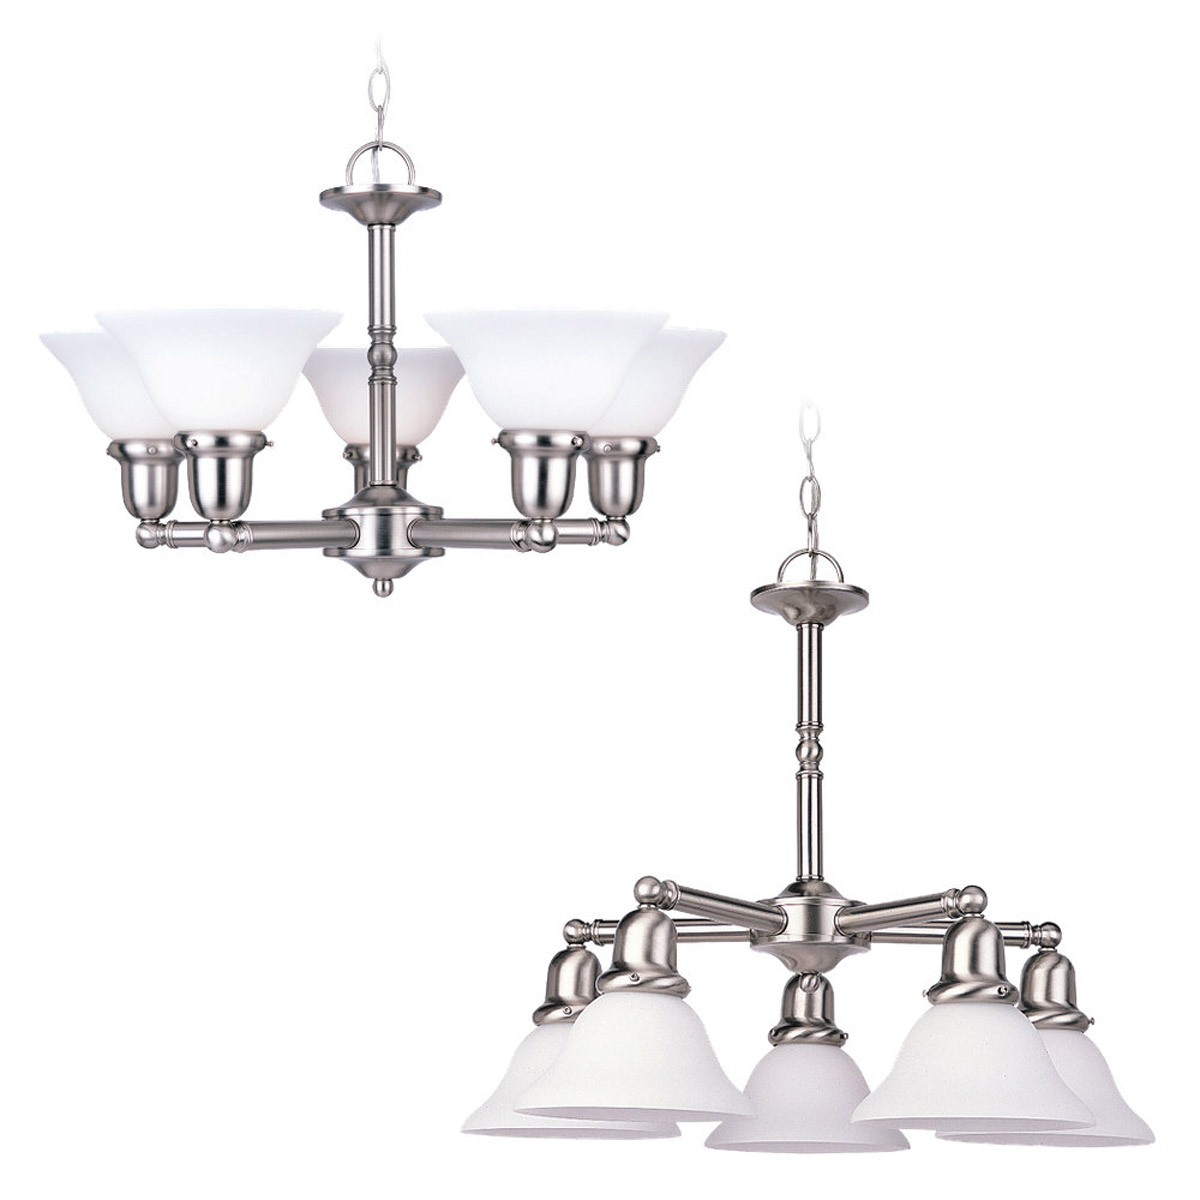 Sea Gull Lighting Sussex 5 Light Chandelier in Brushed Nickel 31061-962 photo